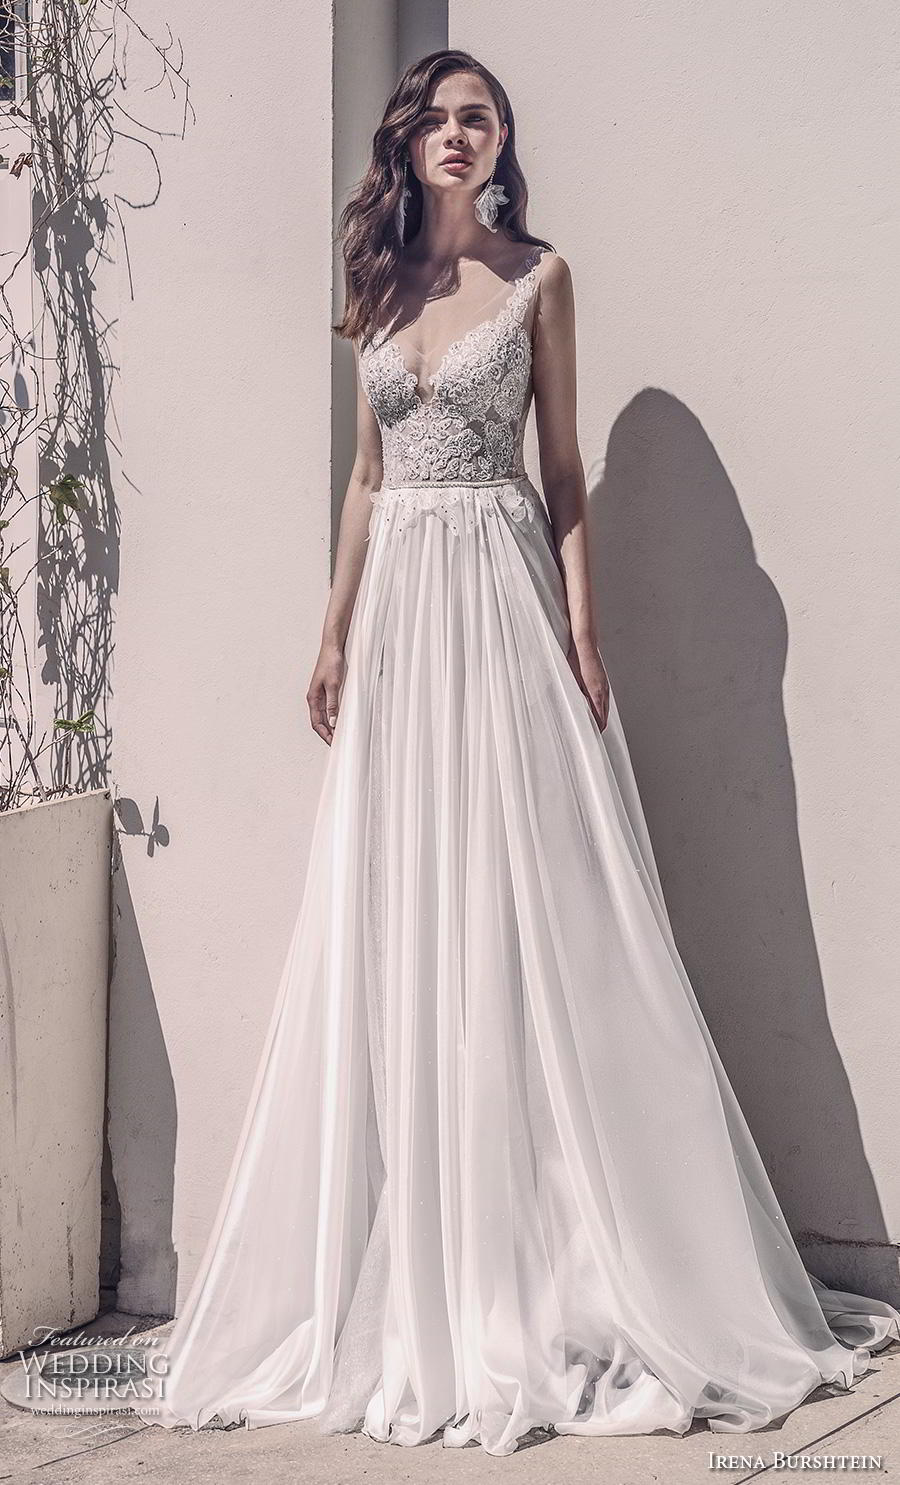 irena burshtein 2020 bridal sleeveless thin strap deep sweetheart neckline heavily embellished bodice romantic soft a  line wedding dress v back chapel train (6) mv